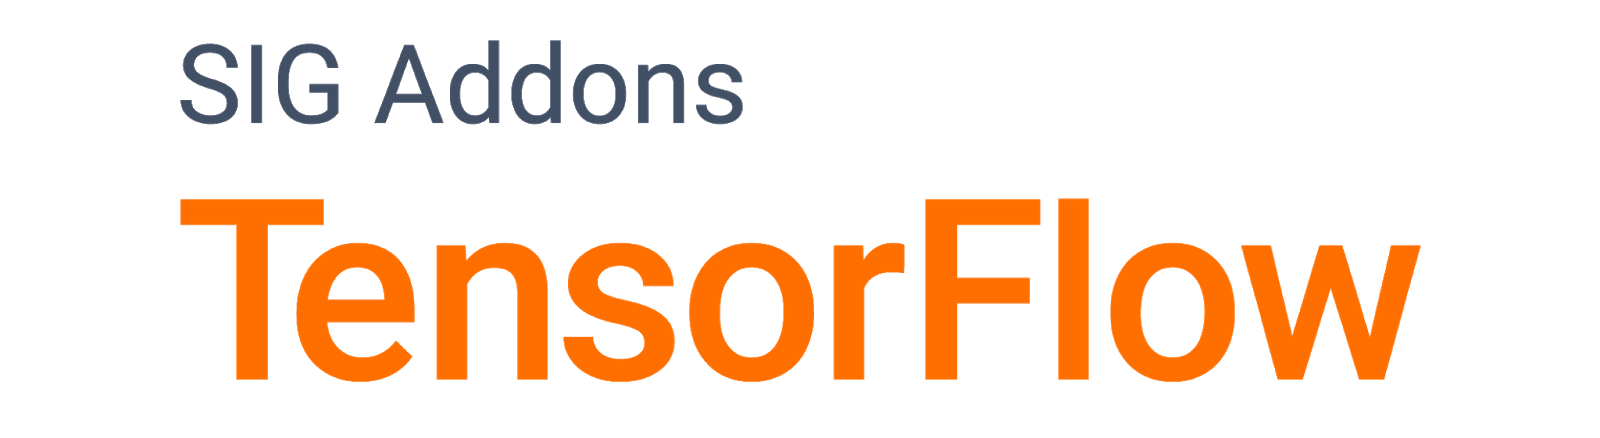 Introducing TensorFlow Addons